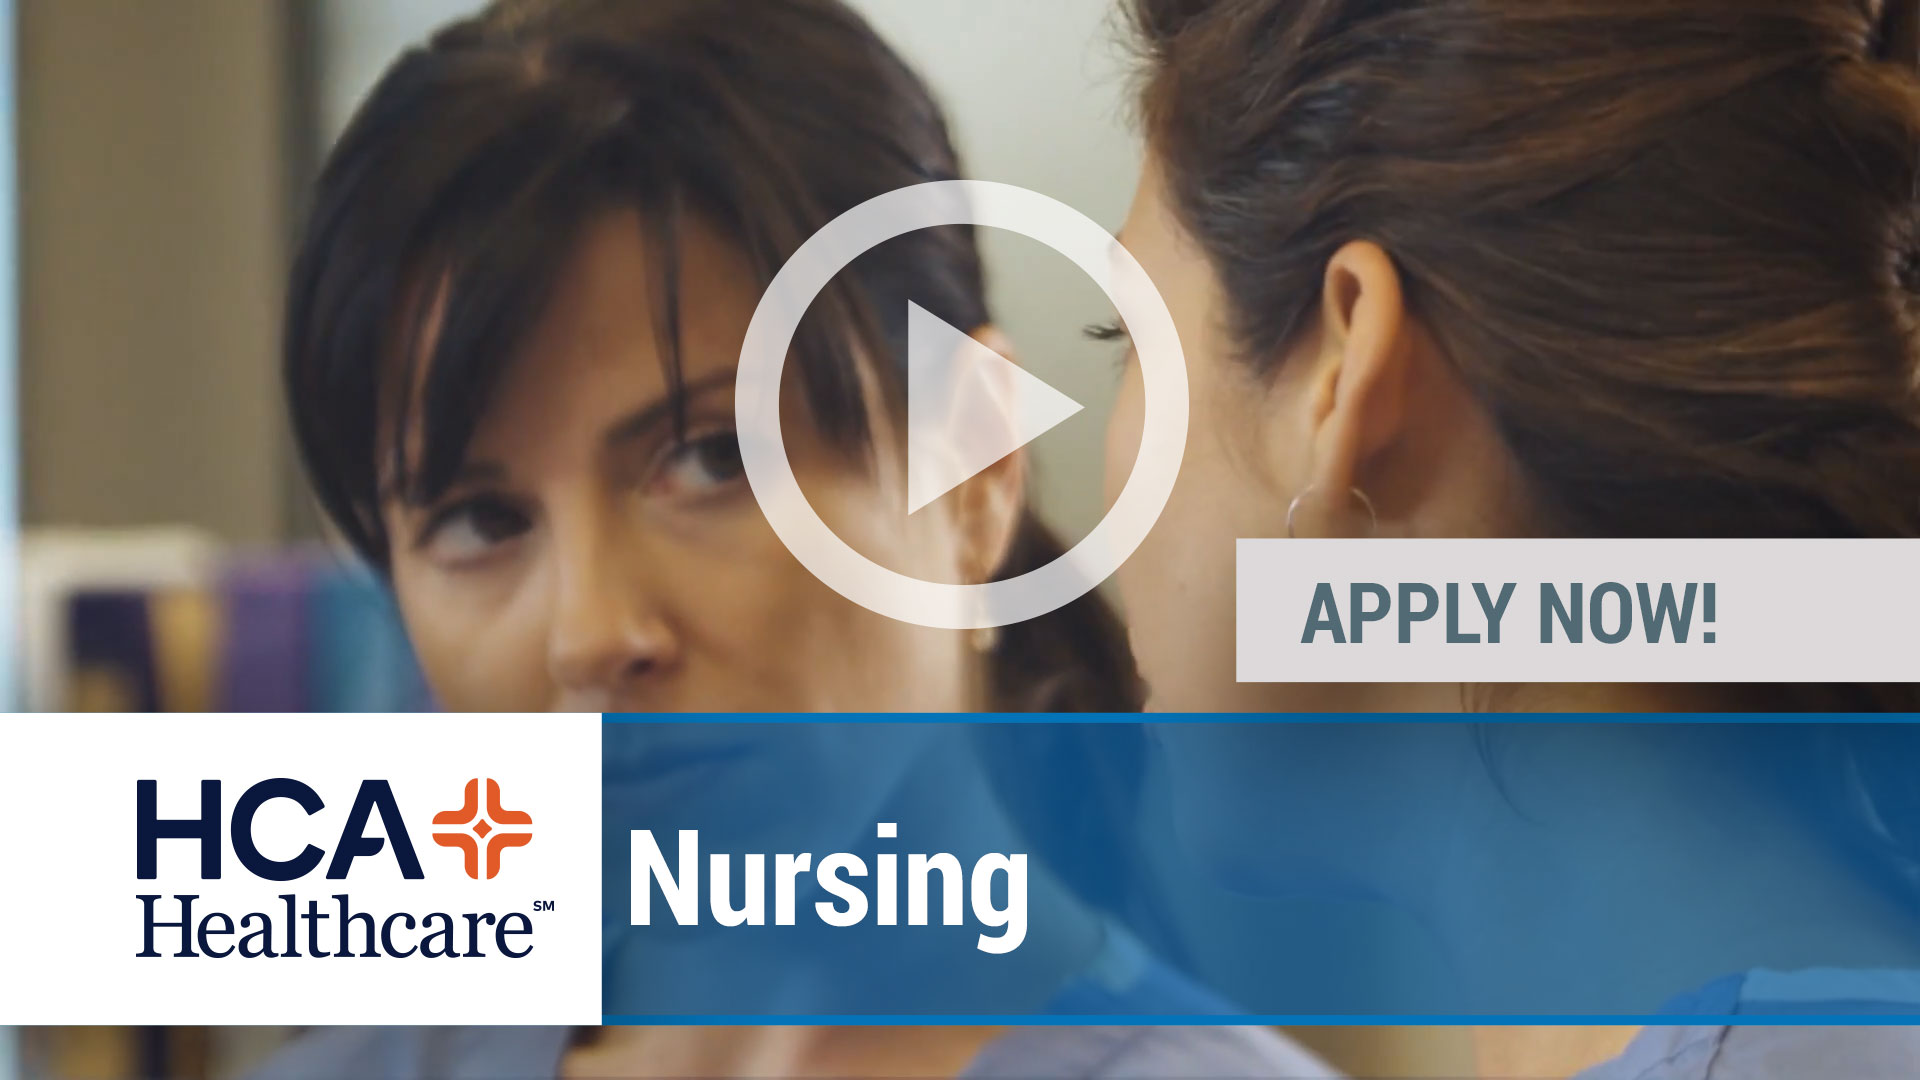 Watch our careers video for available job opening Start Your Career with HCA Healthcare in Multiple Locations Nationwide